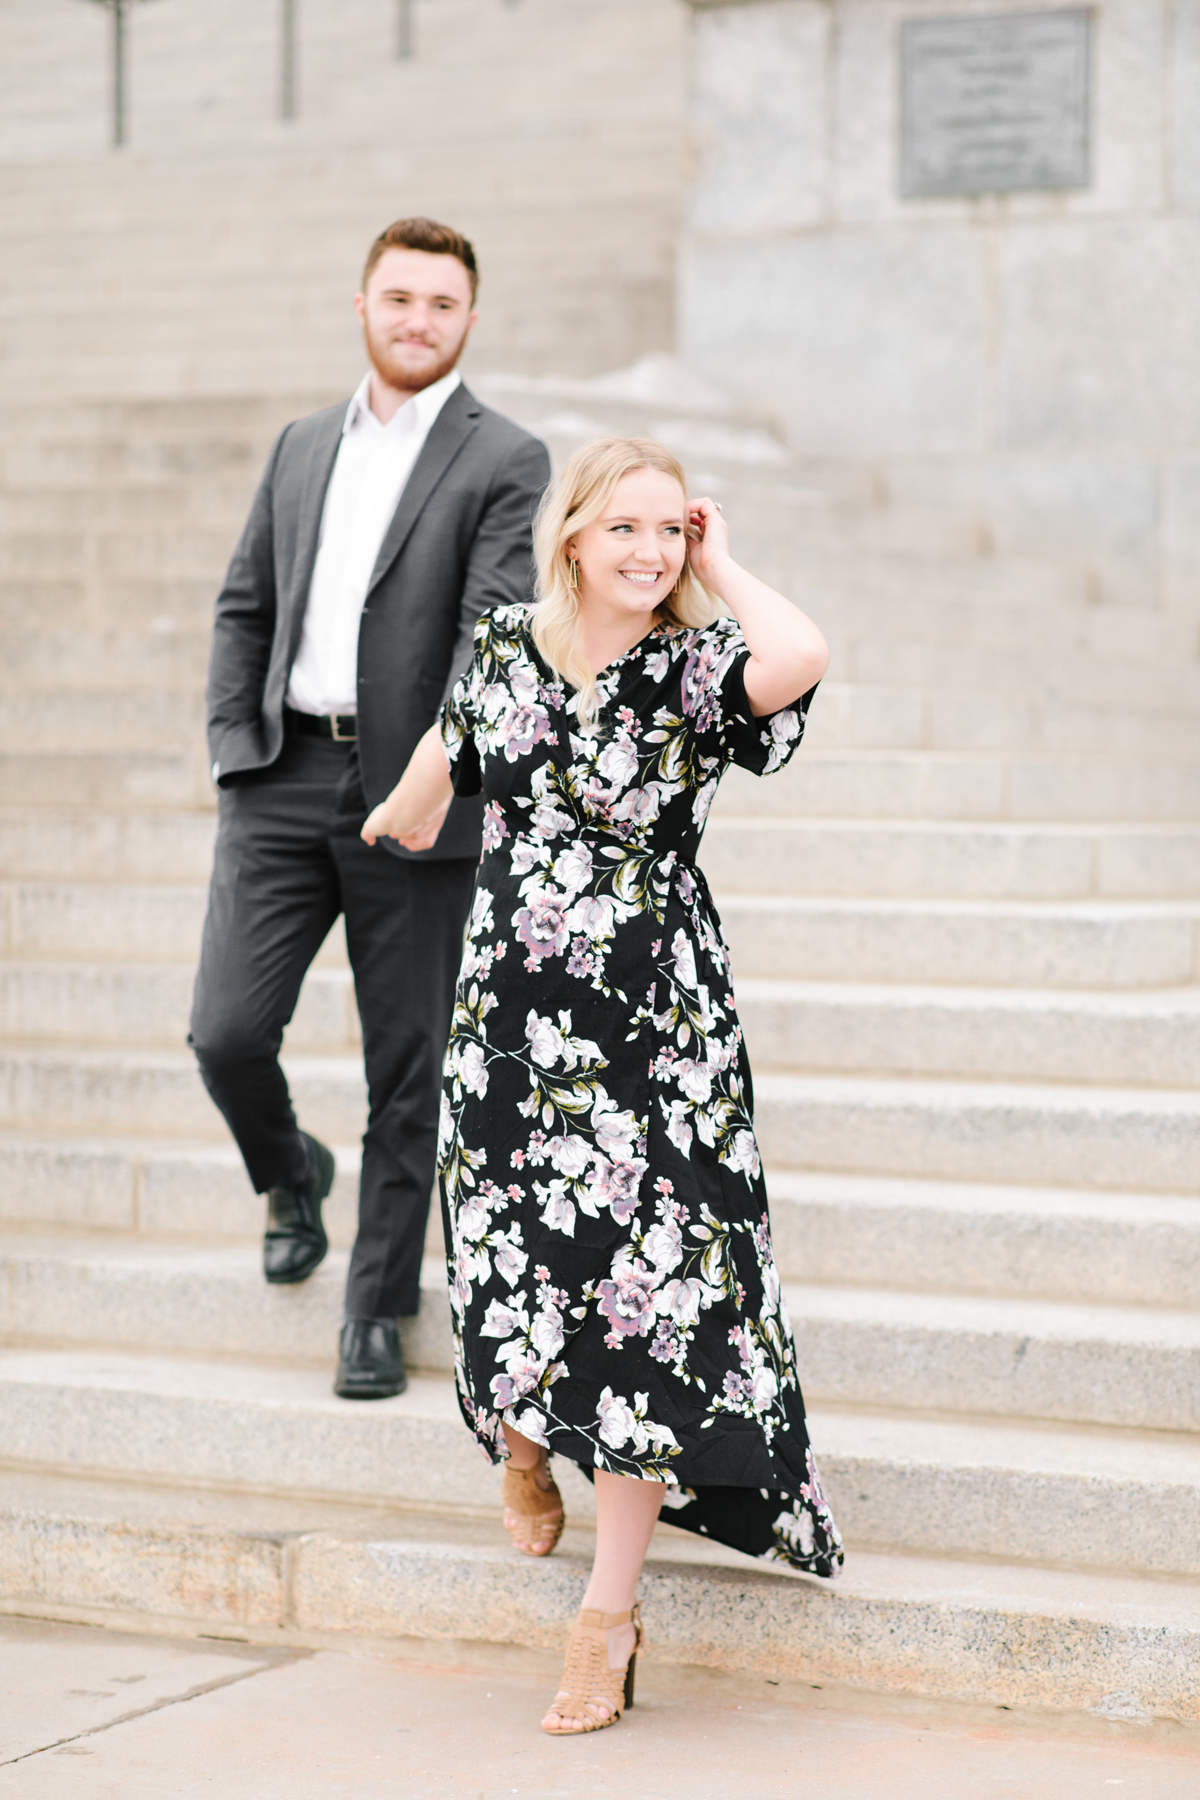 salt lake city capitol building descending staircase urban engagement session holding hands high low floral dress utah valley engagement photographer tucking hair behind ear #saltlakecitycapitolbuilding #engaged #utahvalleyengagementphotography #saltlakecityengagementphotographer #isaidyes #weddinginspo #engagementphotos #utah ##outfitinspo #fiance